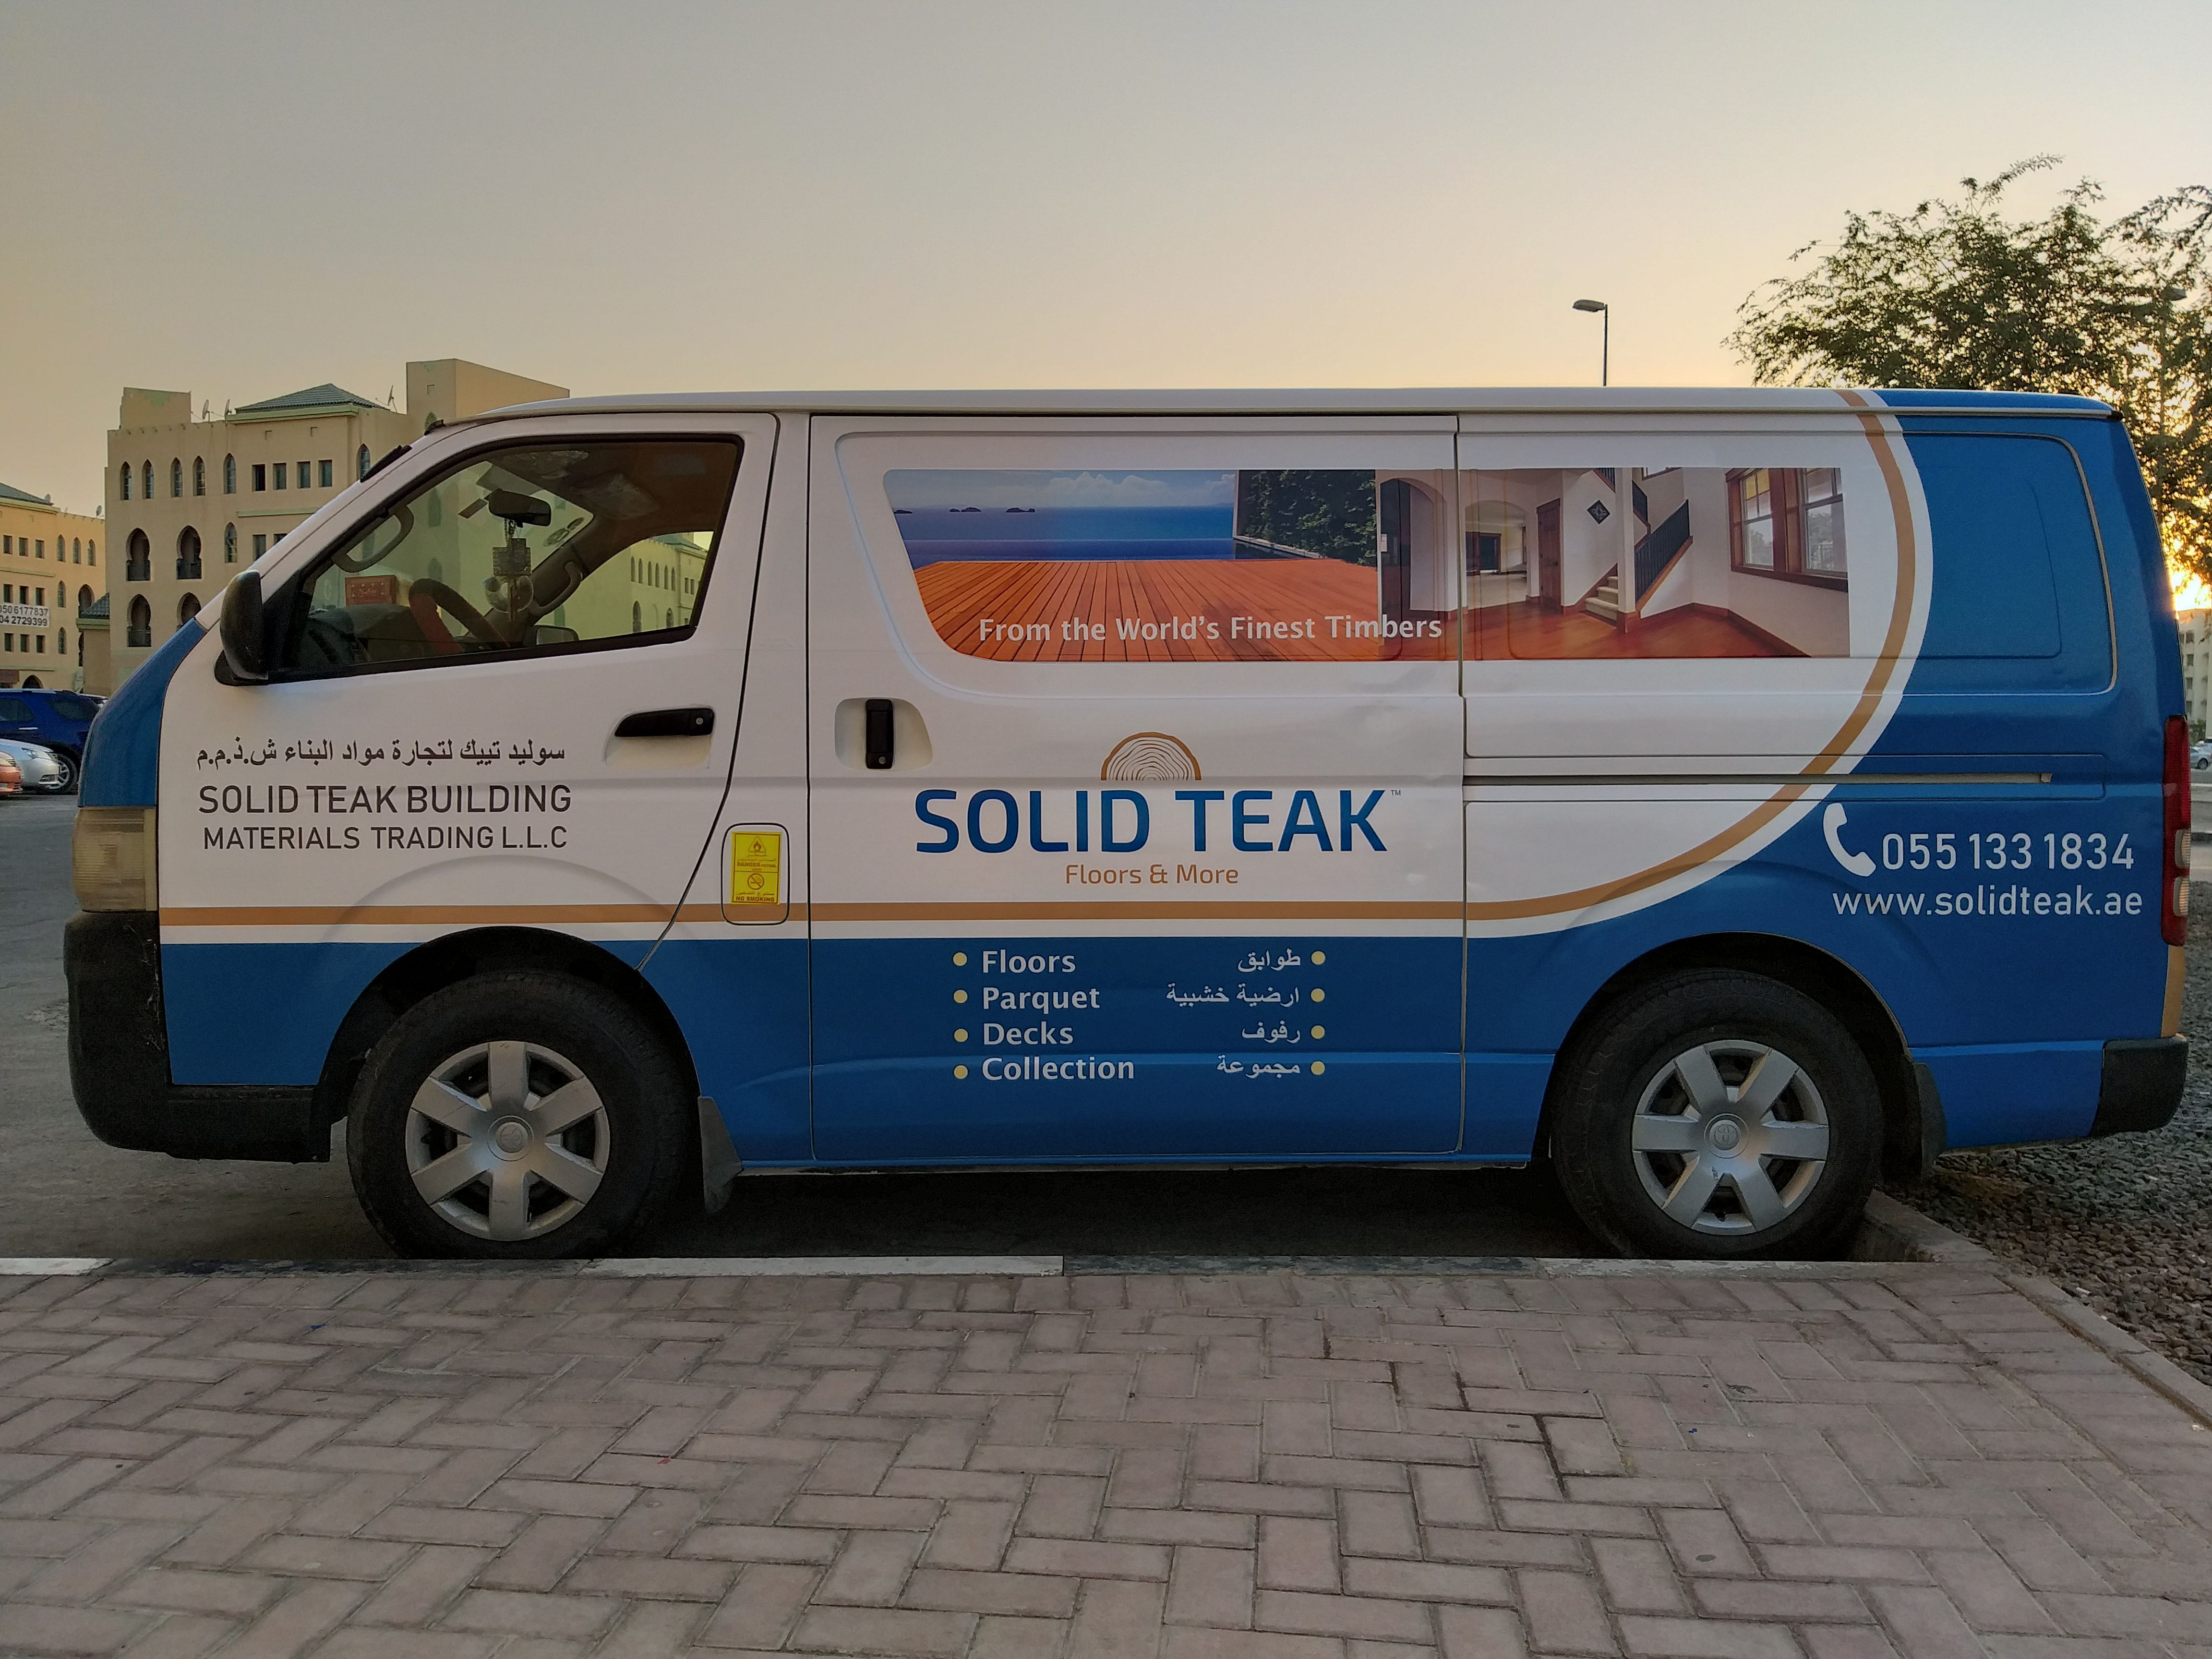 Vehicle Branding Car Stickers Bus Wrapping Vehicle Advertisement In Dubai Car Brands Vehicles Outdoor Advertising [ 3456 x 4608 Pixel ]